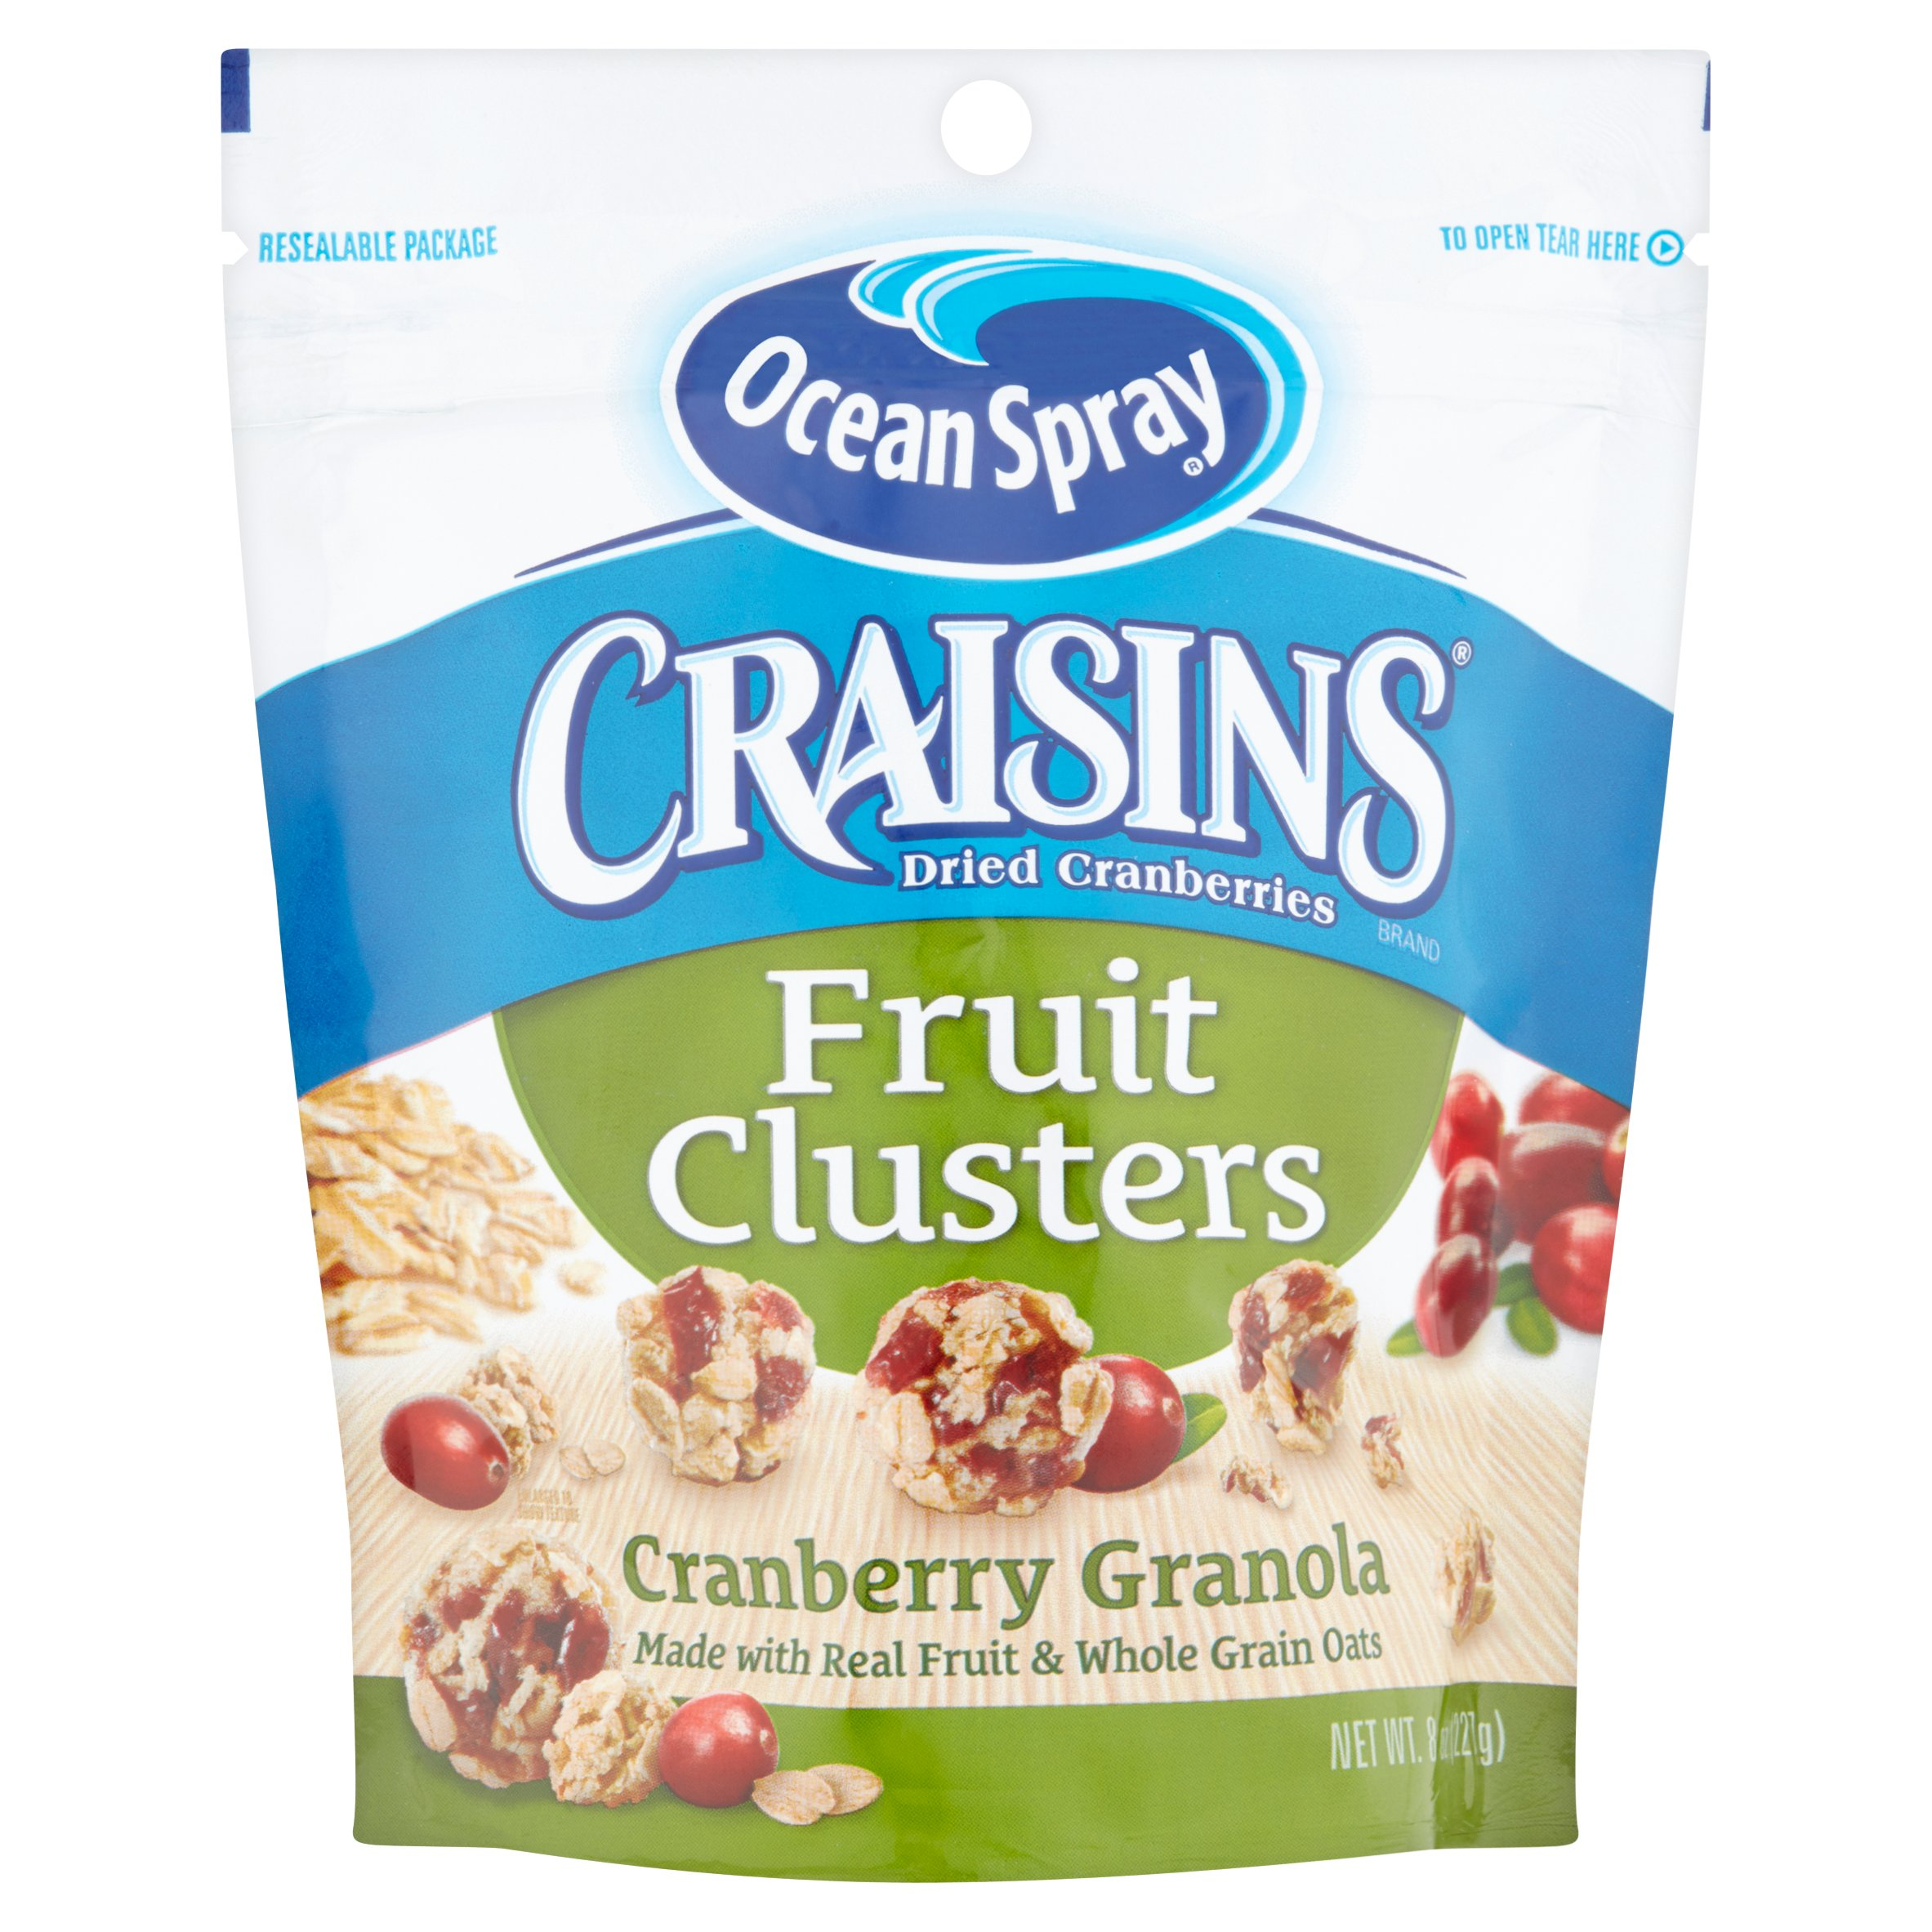 Craisins Dried Cranberries Cranberry Granola Fruit Clusters 8 oz. Bag by Ocean Spray Cranberries, Inc., a Grower Cooperative,